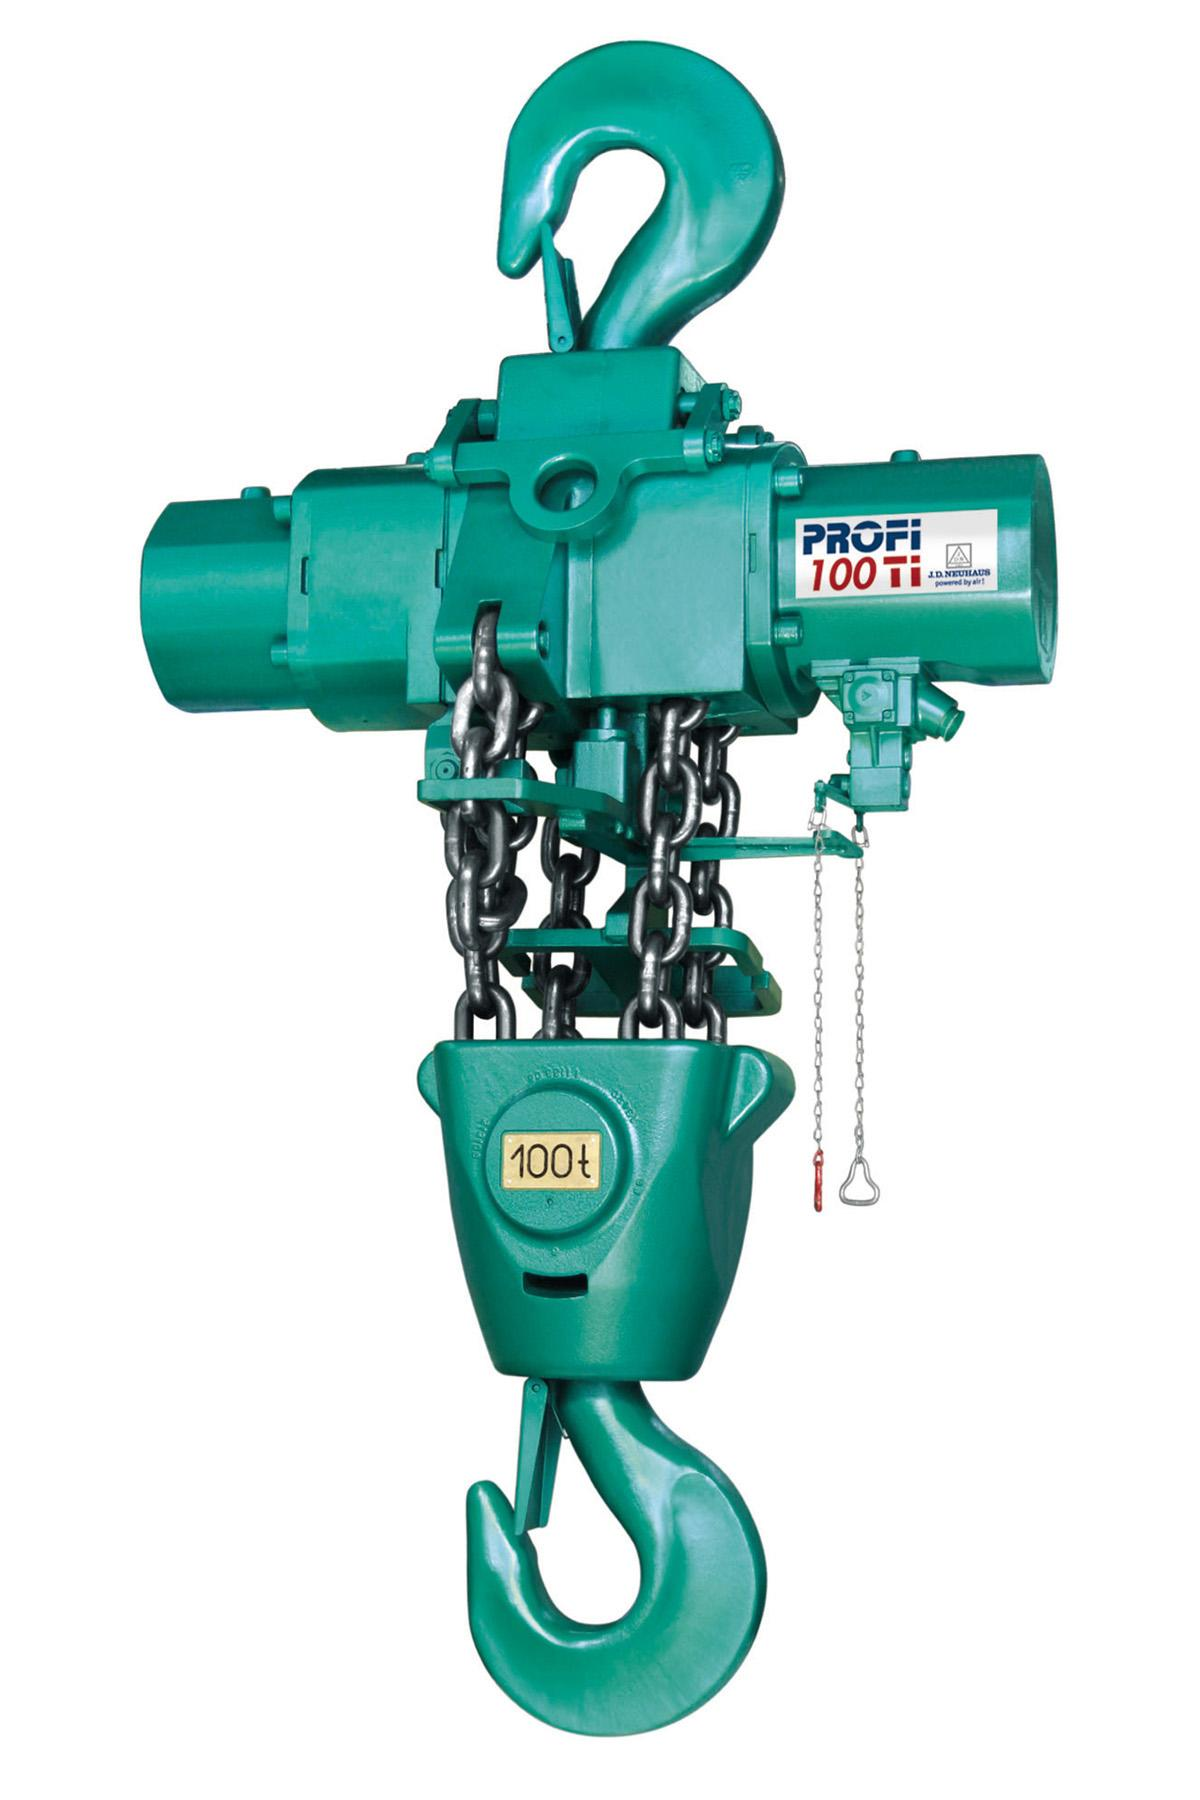 Ti air hoist, part a series of hoists offering lift capacities from 250kg up to 100 tonnes